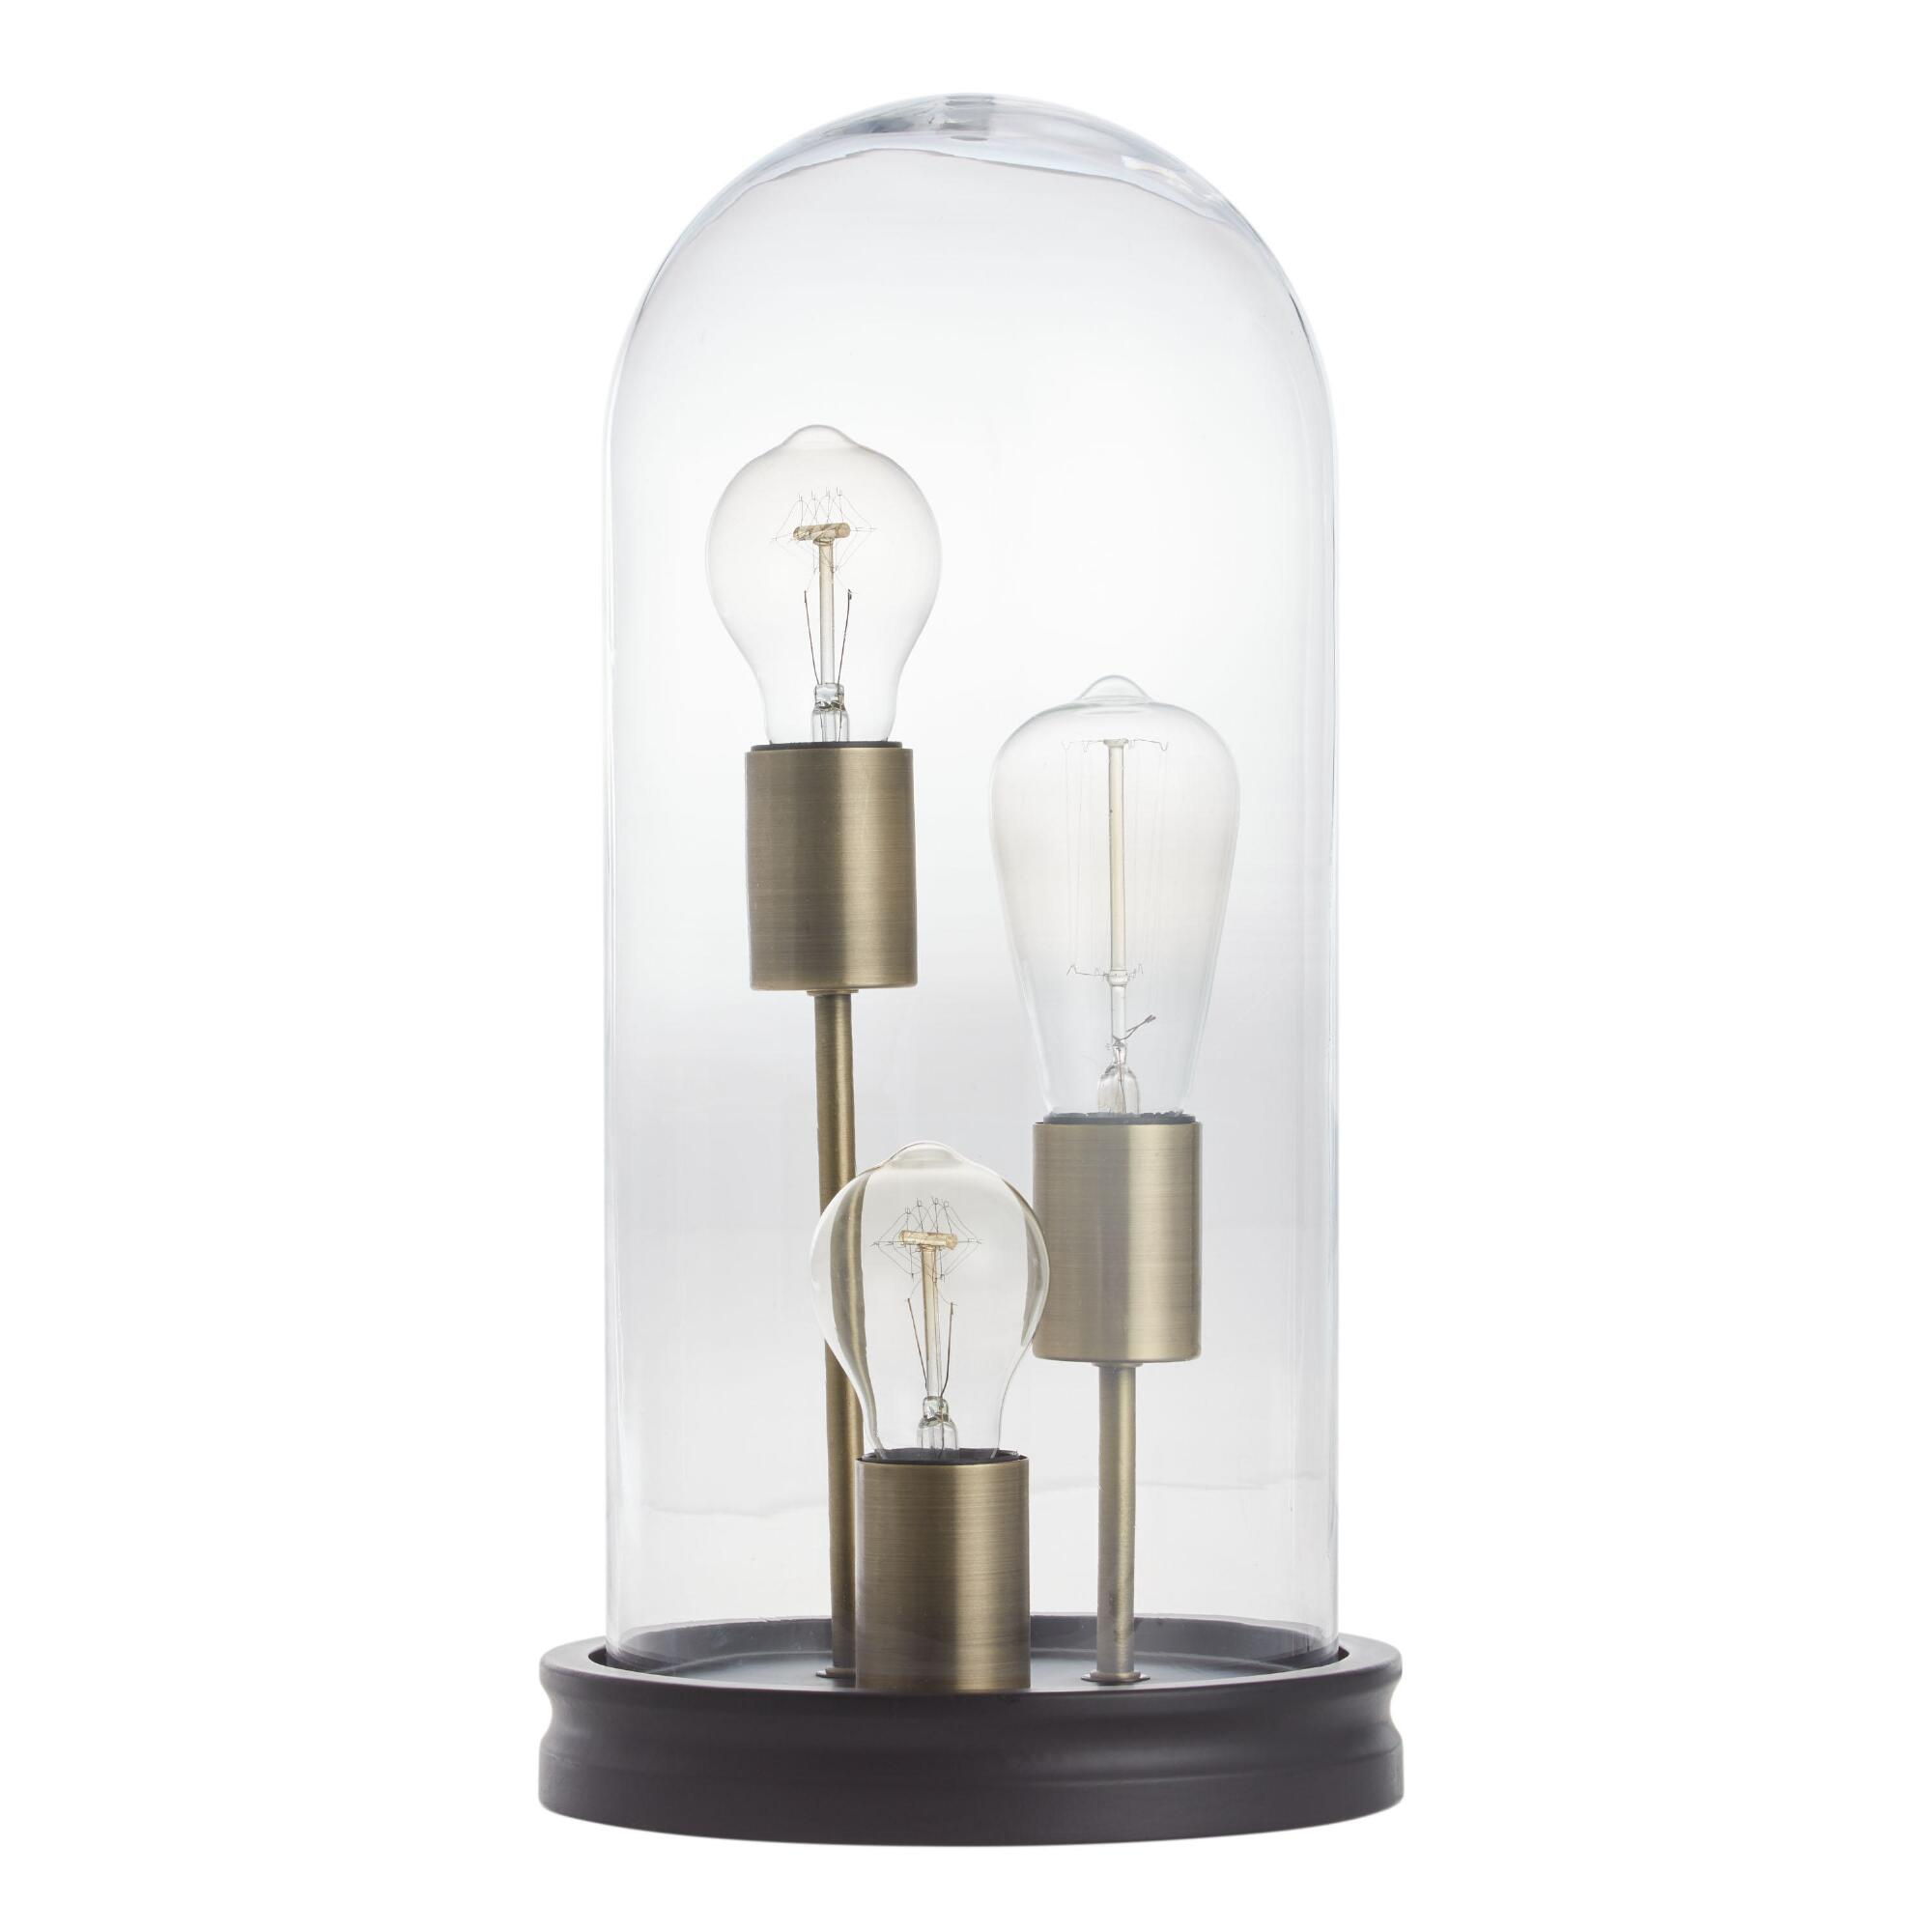 glass cloche 3 edison bulb table lamp - Decorative Lighting